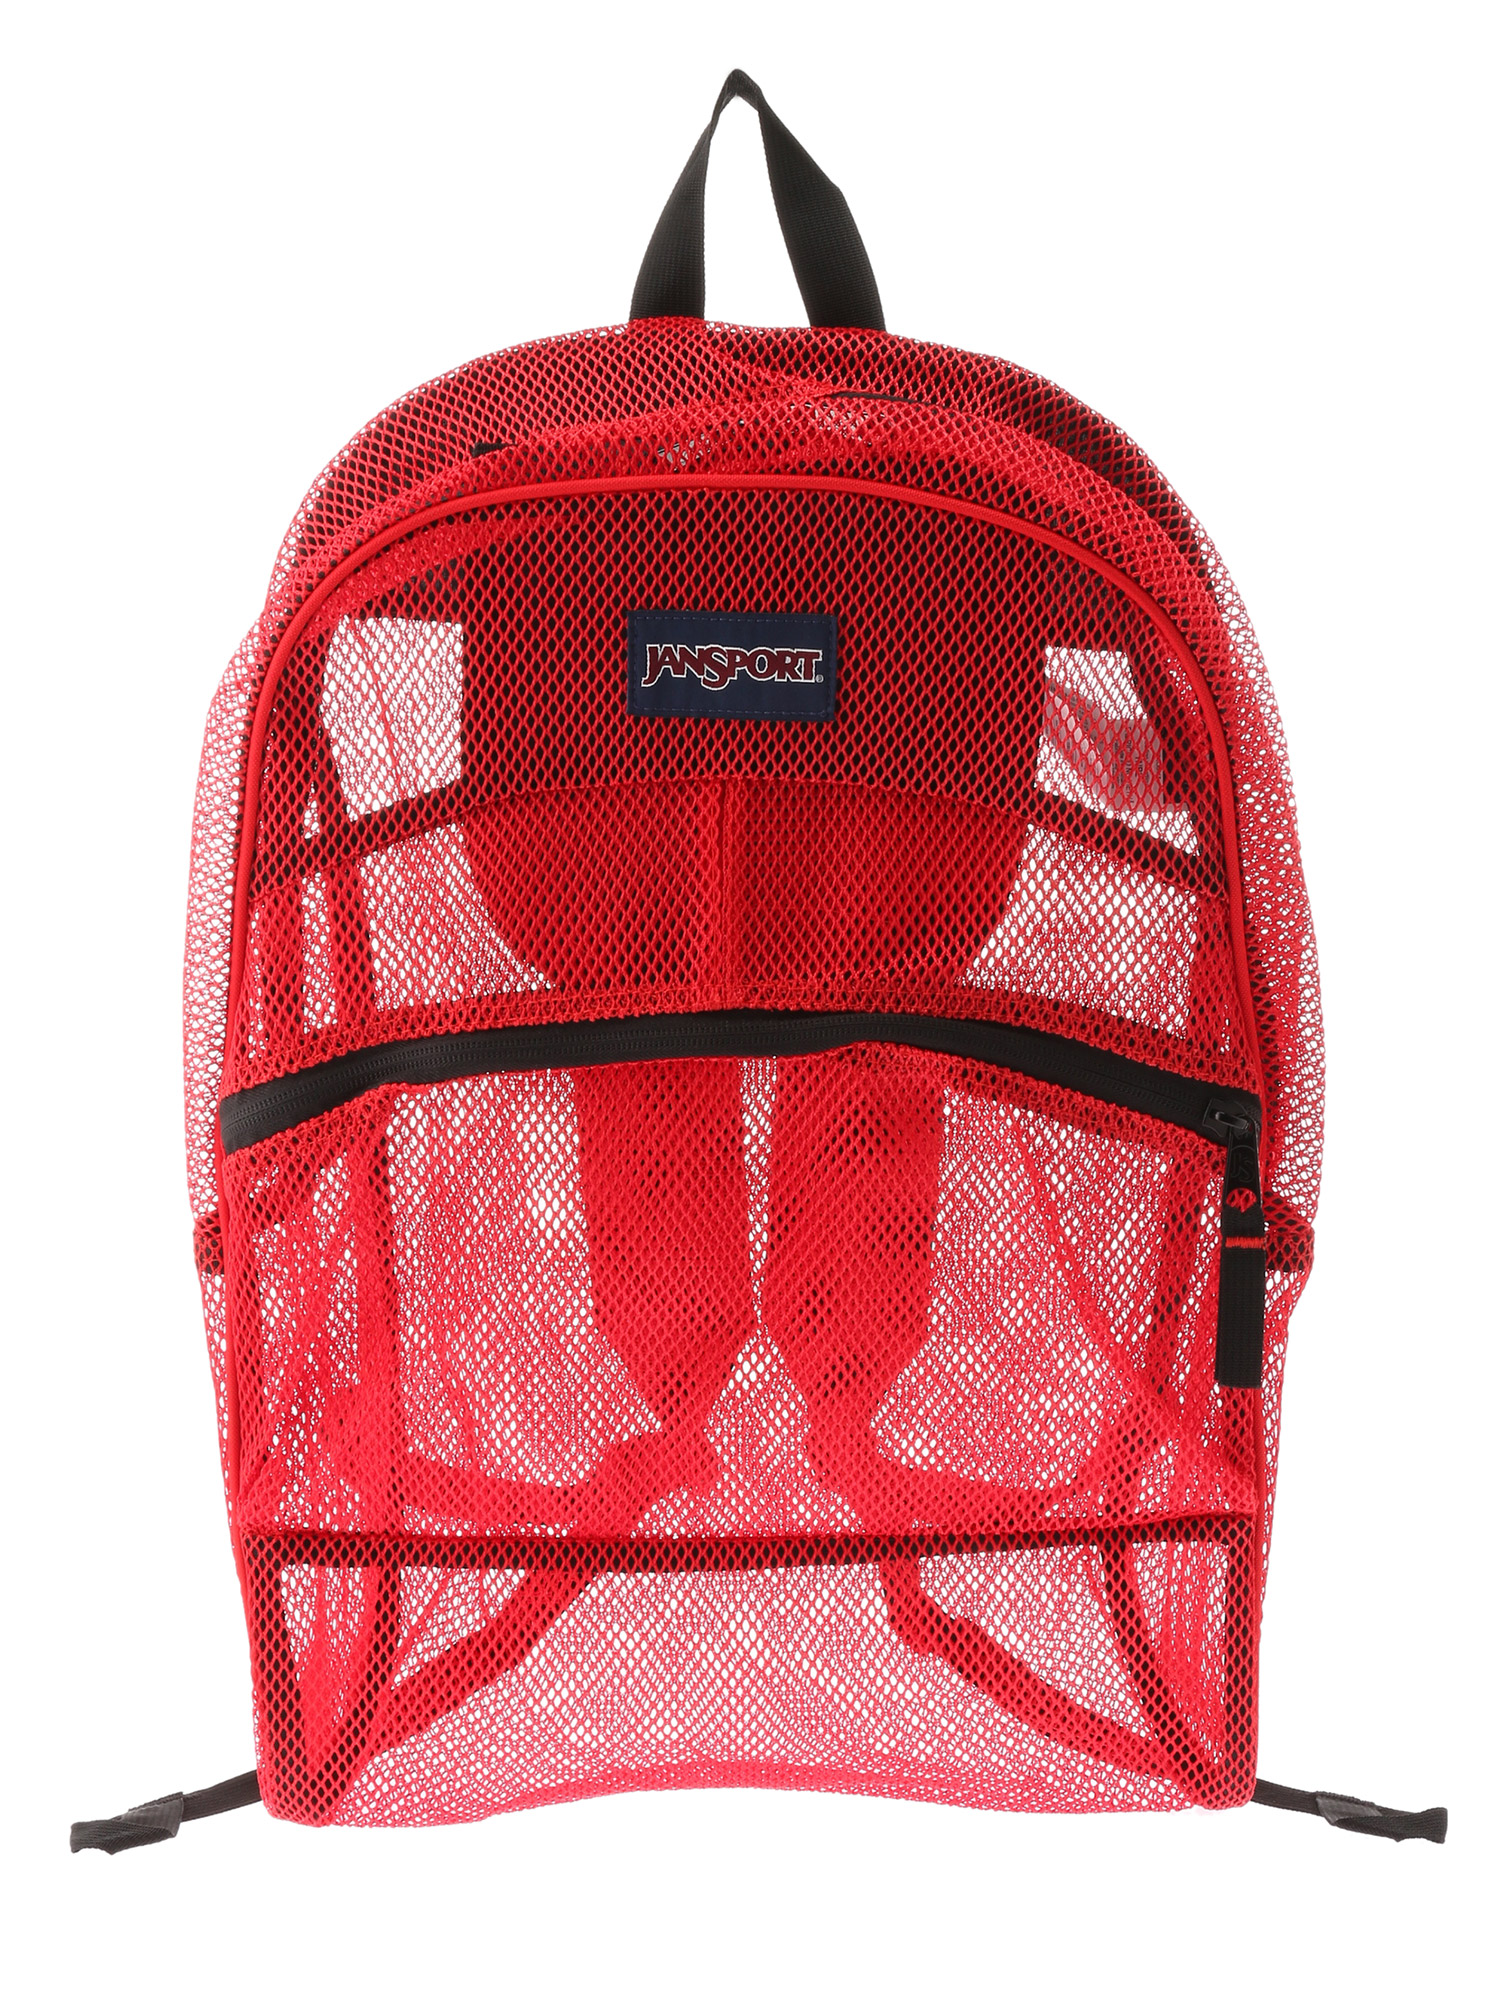 WEGO/JANSPORTMESHPACK